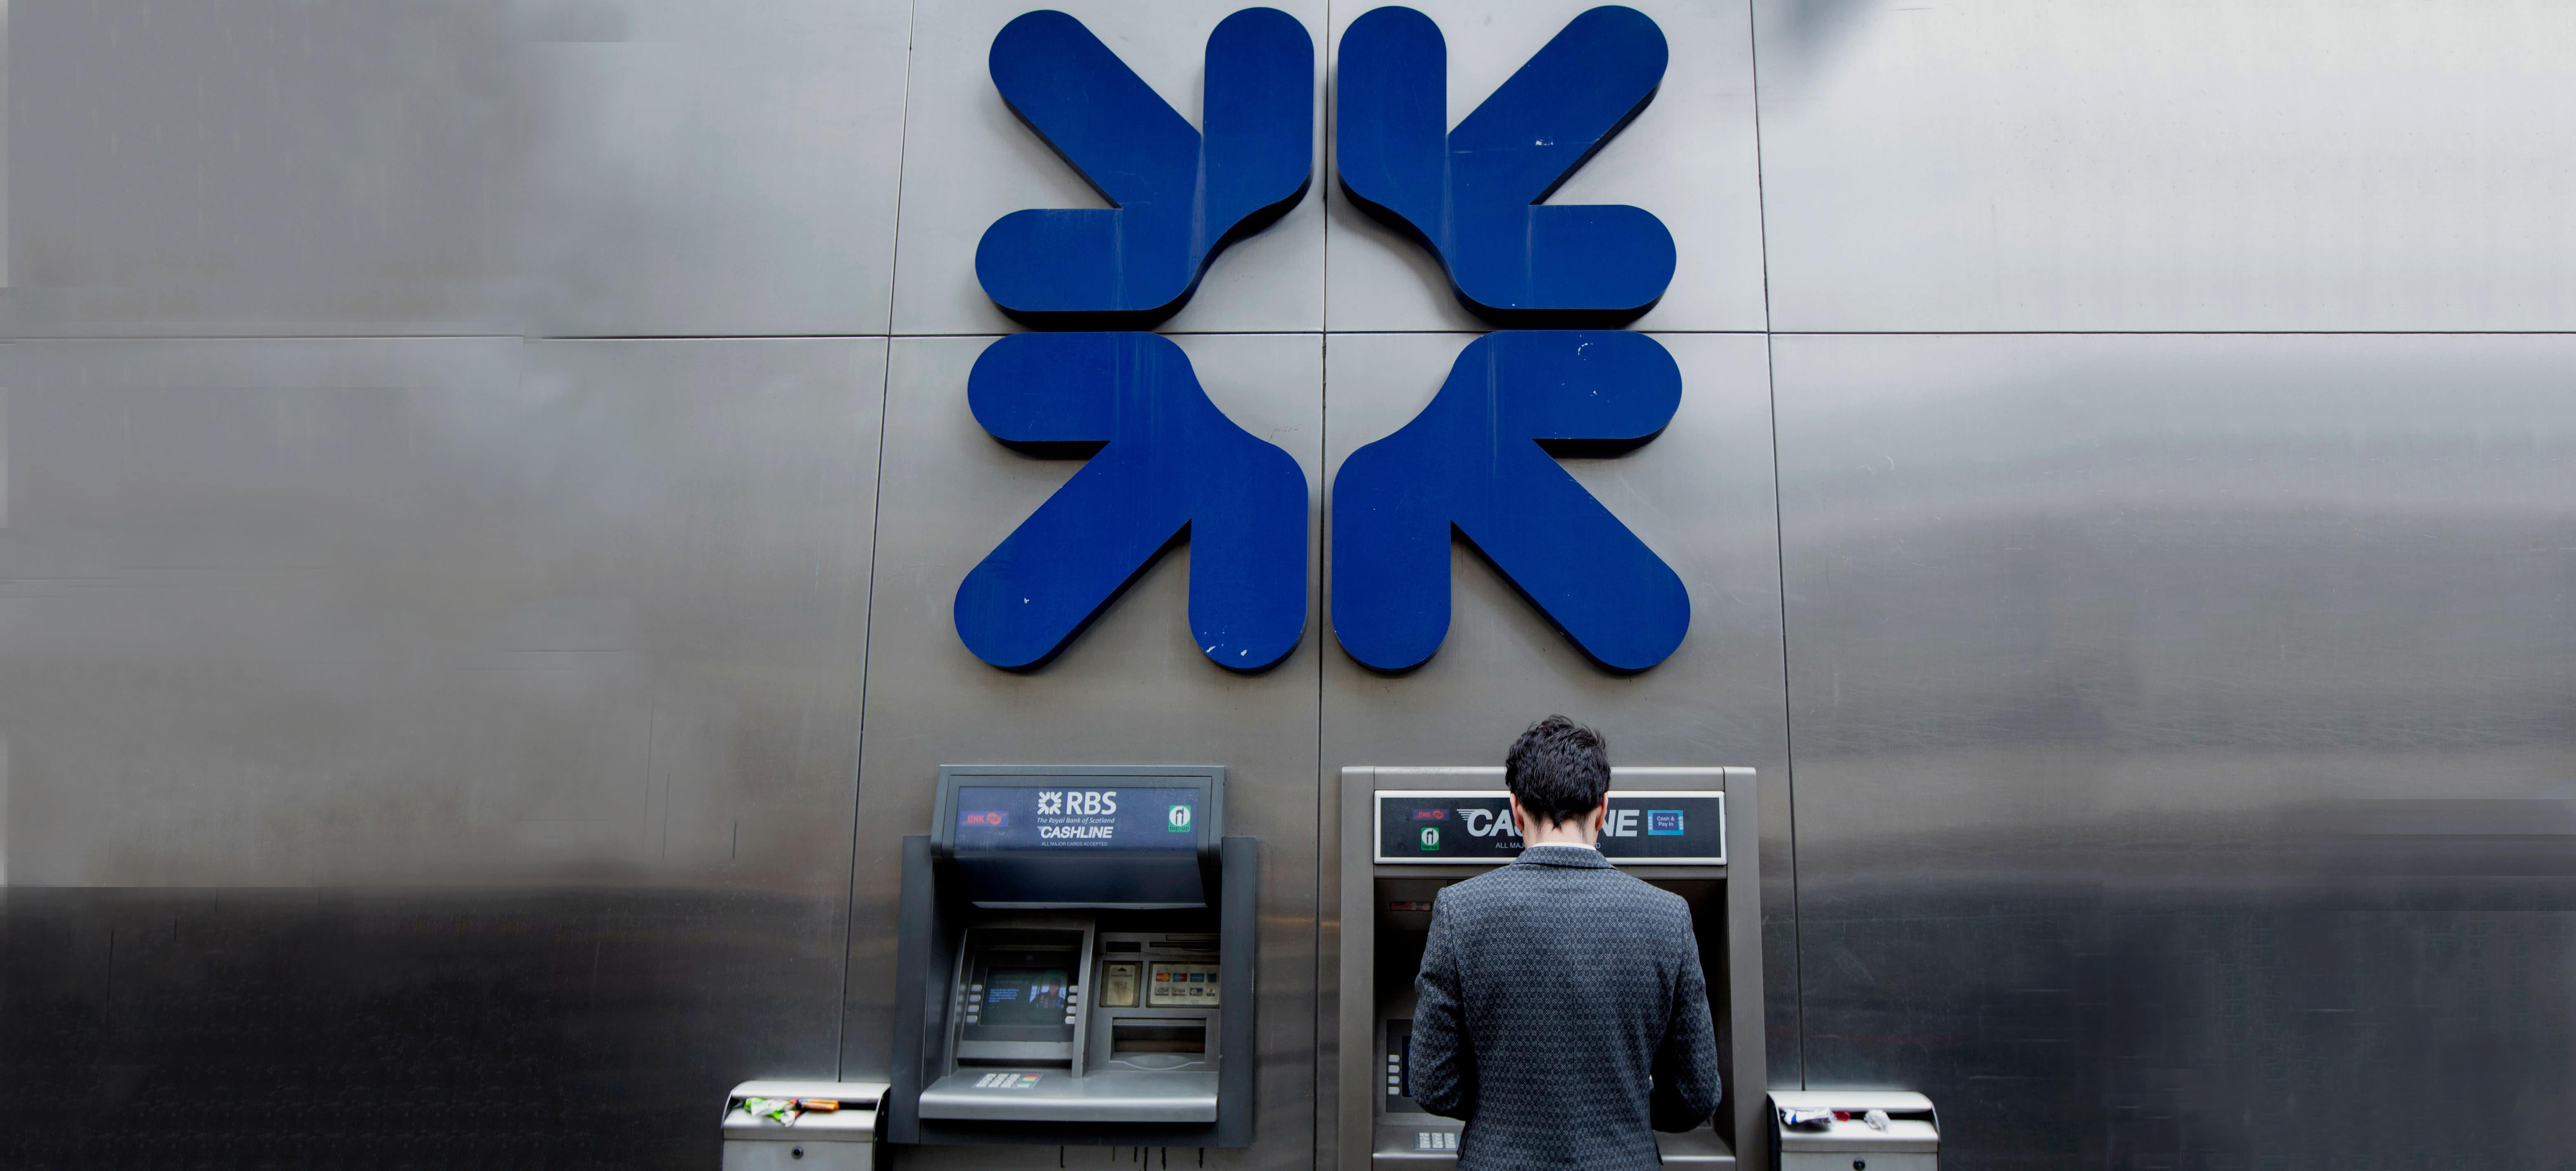 RBS Launches Low-Cost Robo Adviser Service with Minimum £500 Threshold